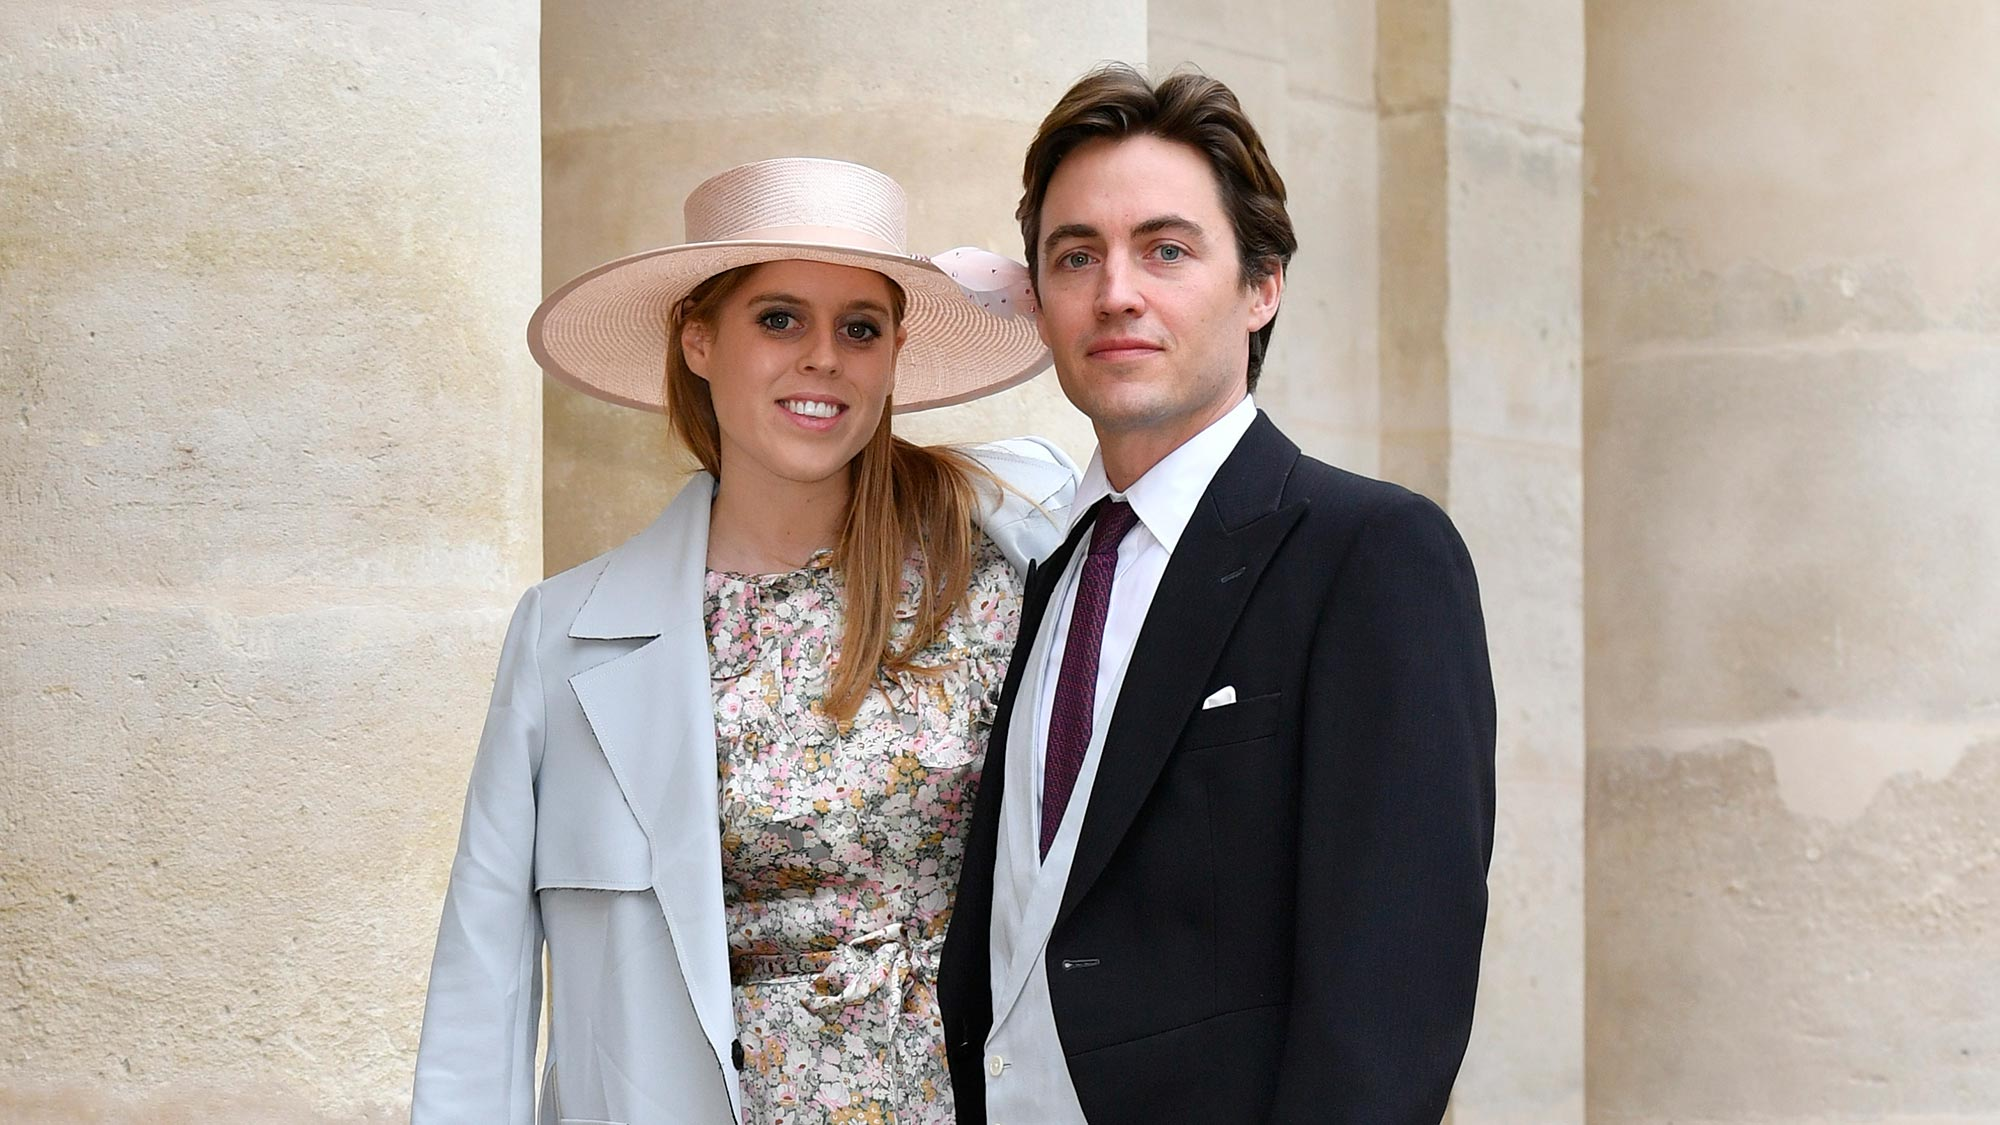 Princess Beatrice is likely to wear this tiara on her wedding day